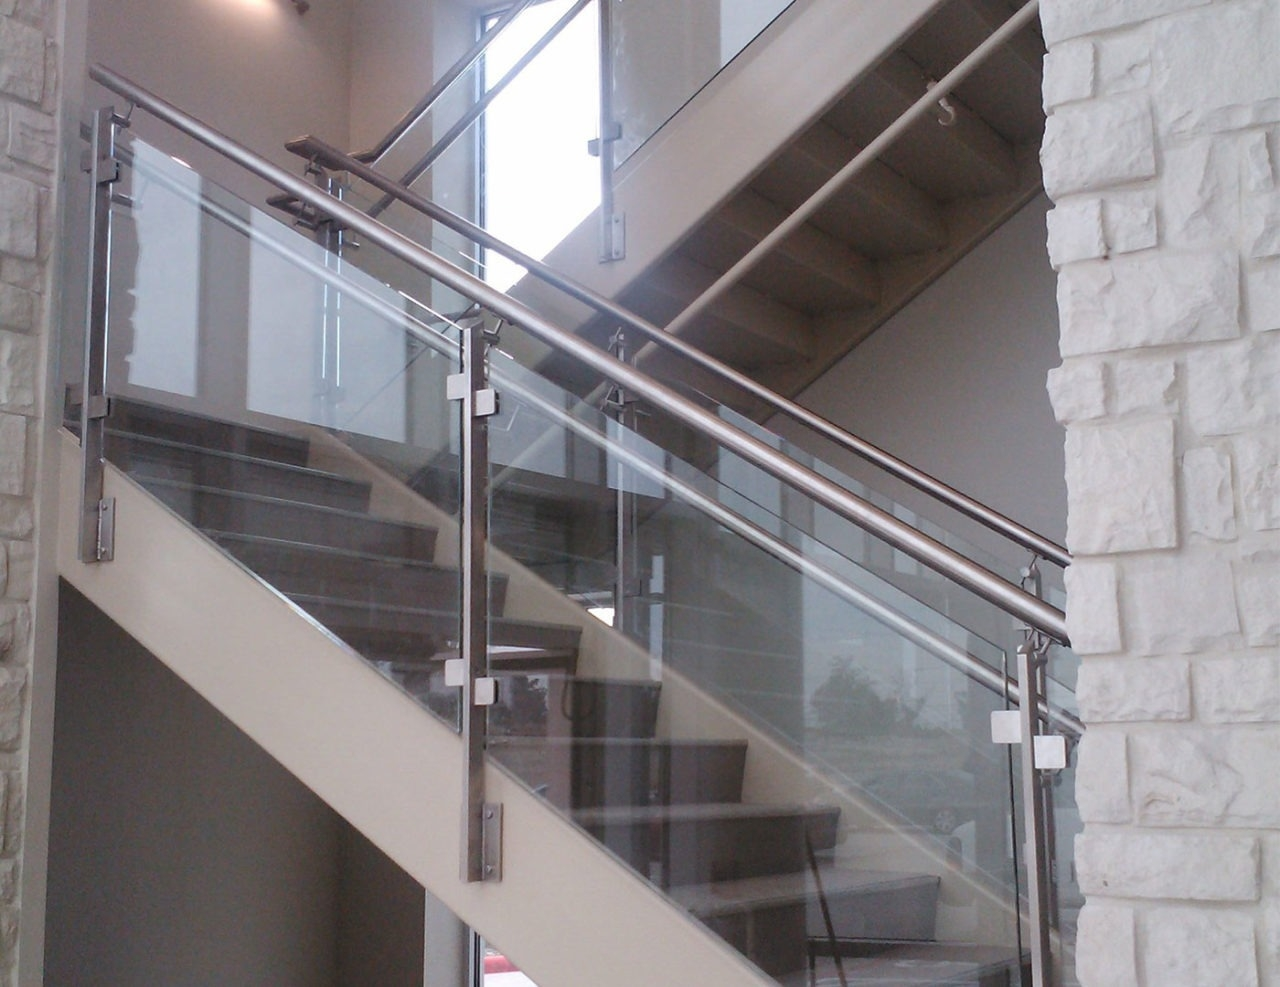 Summit Architectural Glass Railing Emerus Hospital Trex   Glass Stair Railing Near Me   Interior   Railing Systems   Stainless Steel   Tempered Glass Panels   Iron